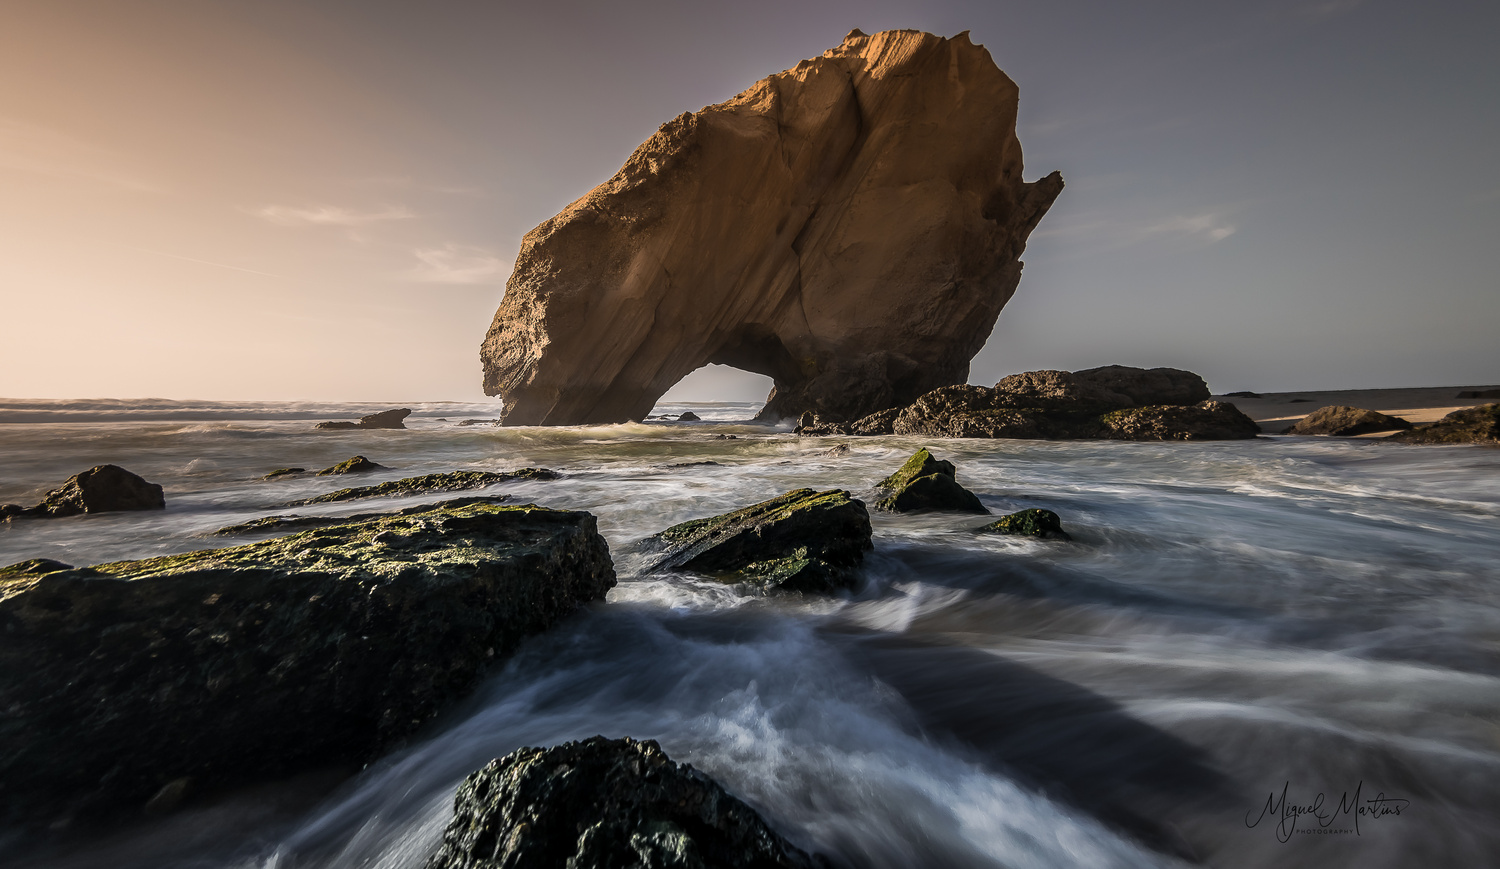 The Rock by Miguel Martins